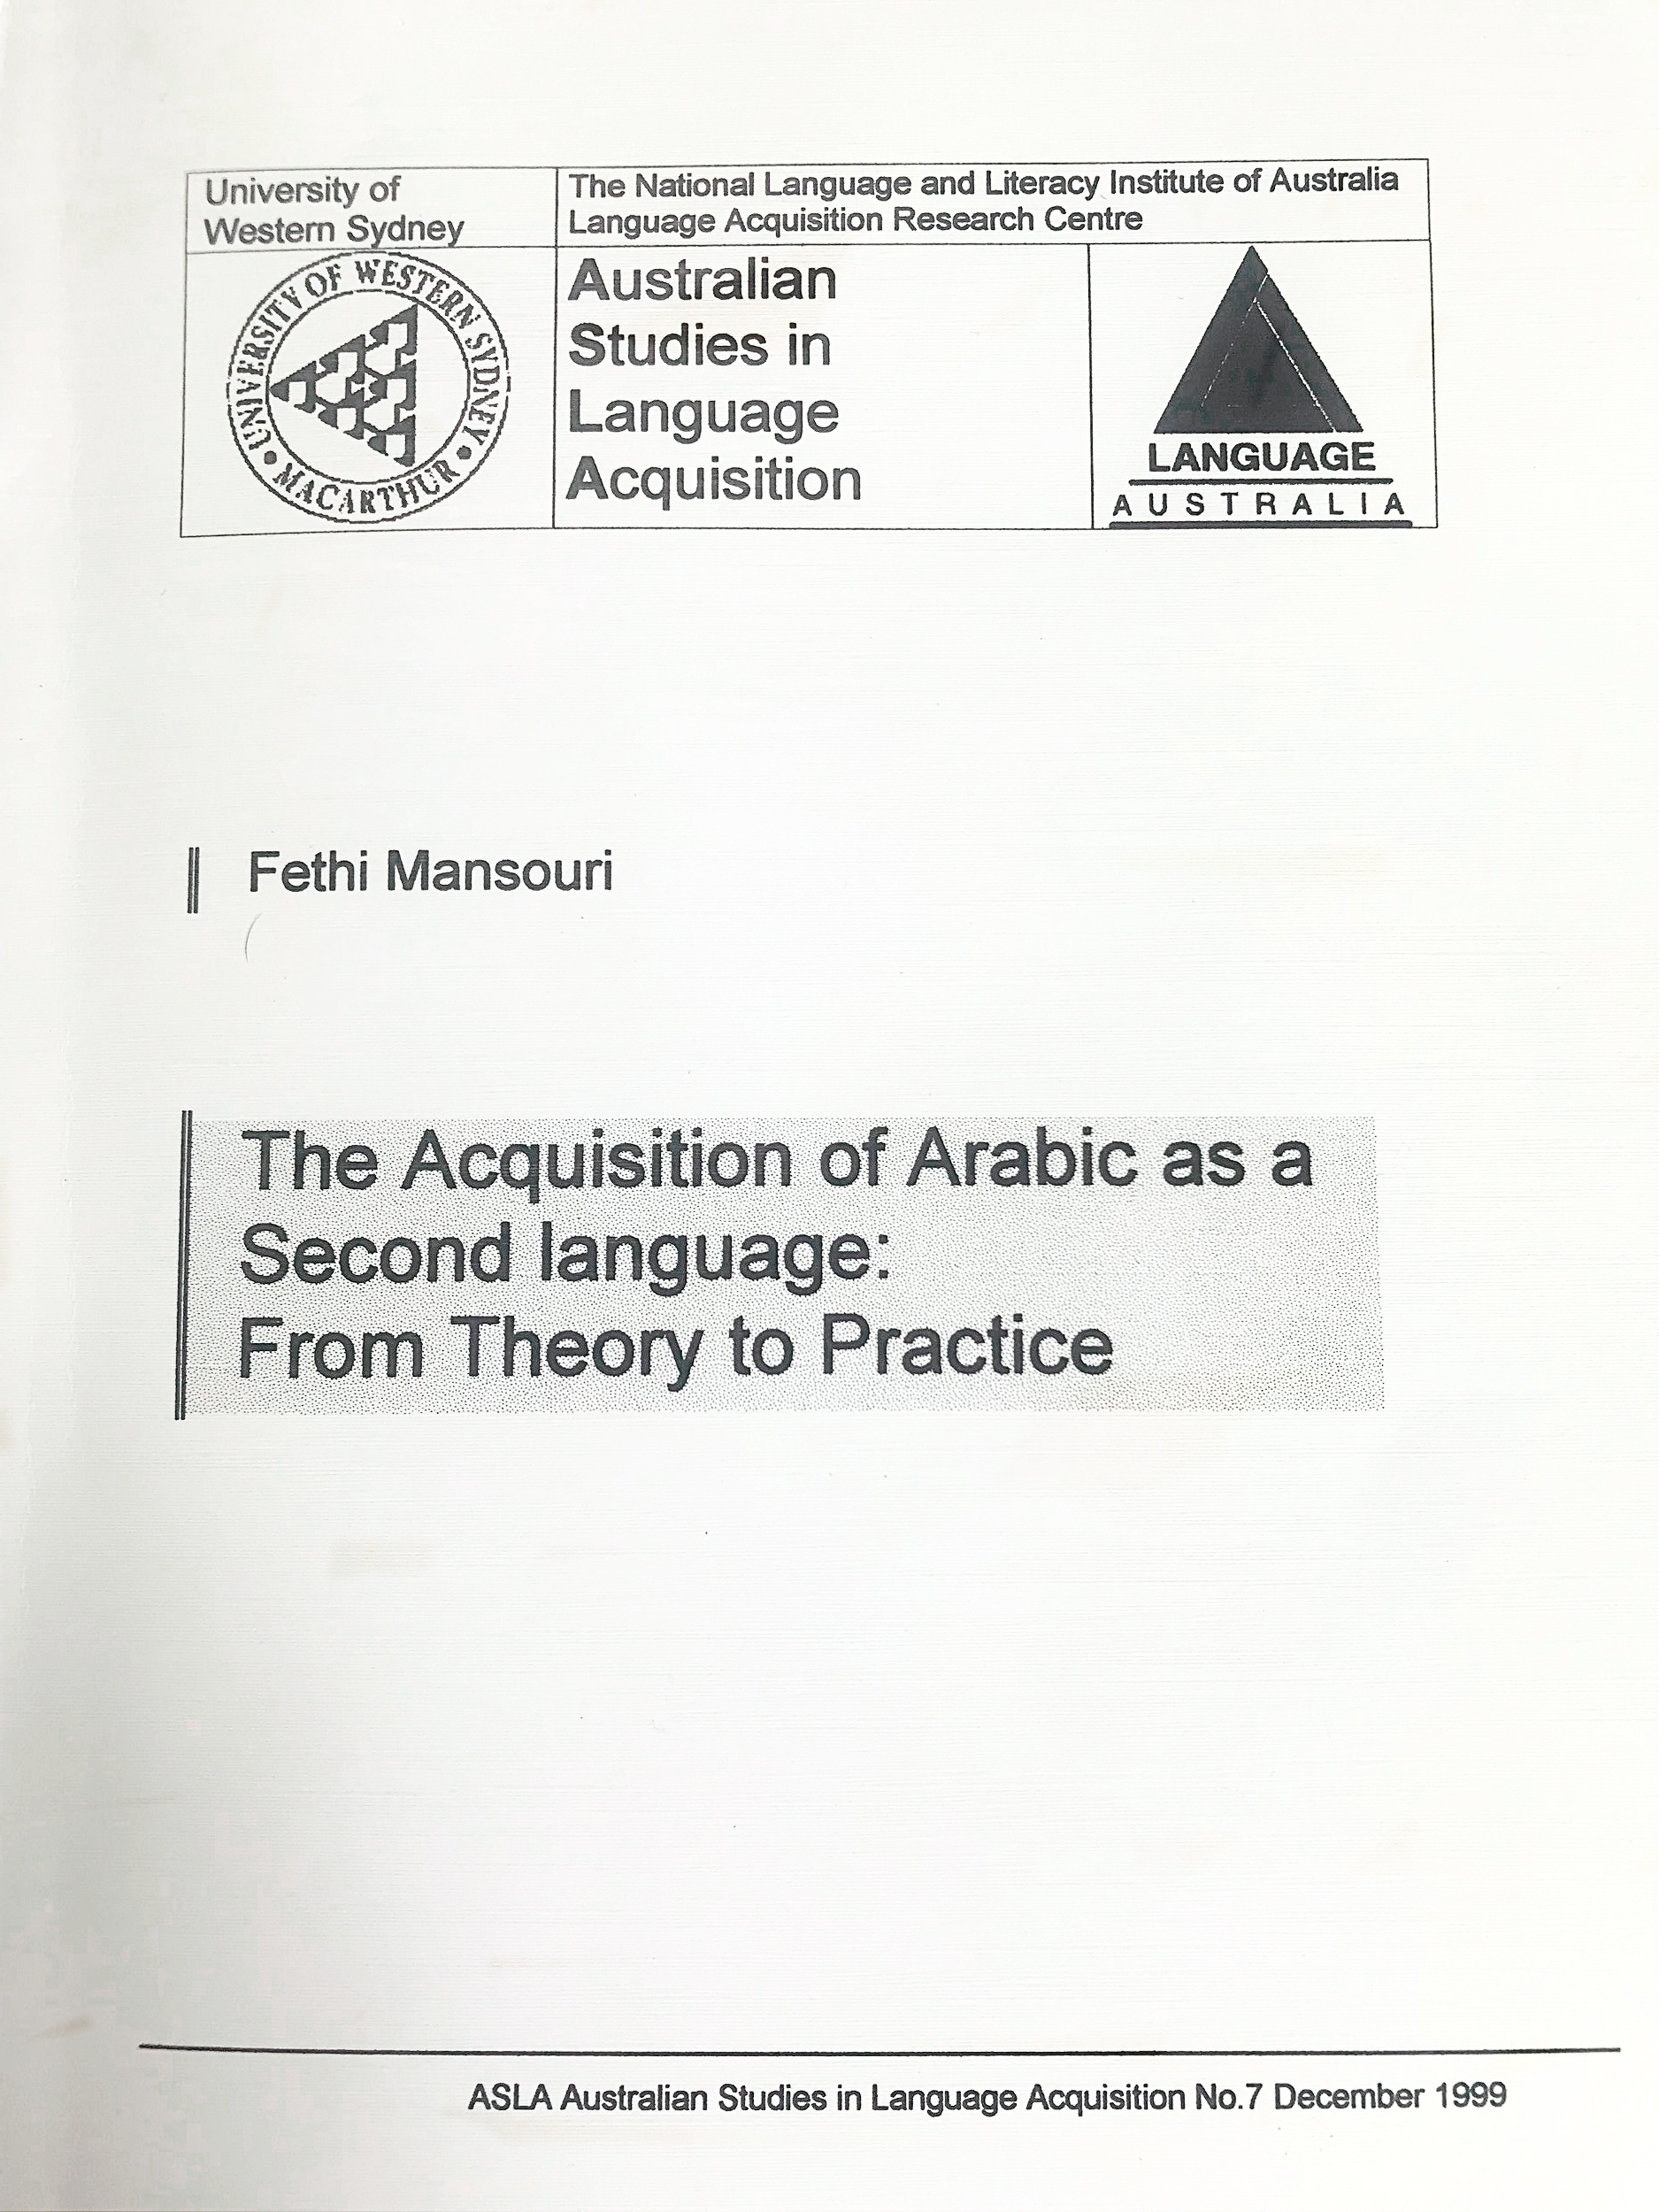 Mansouri, F. (1999) - 'The Acquisition of Arabic as a Second Language: From Theory to Practice'.University of Western Sydney, Macarther.